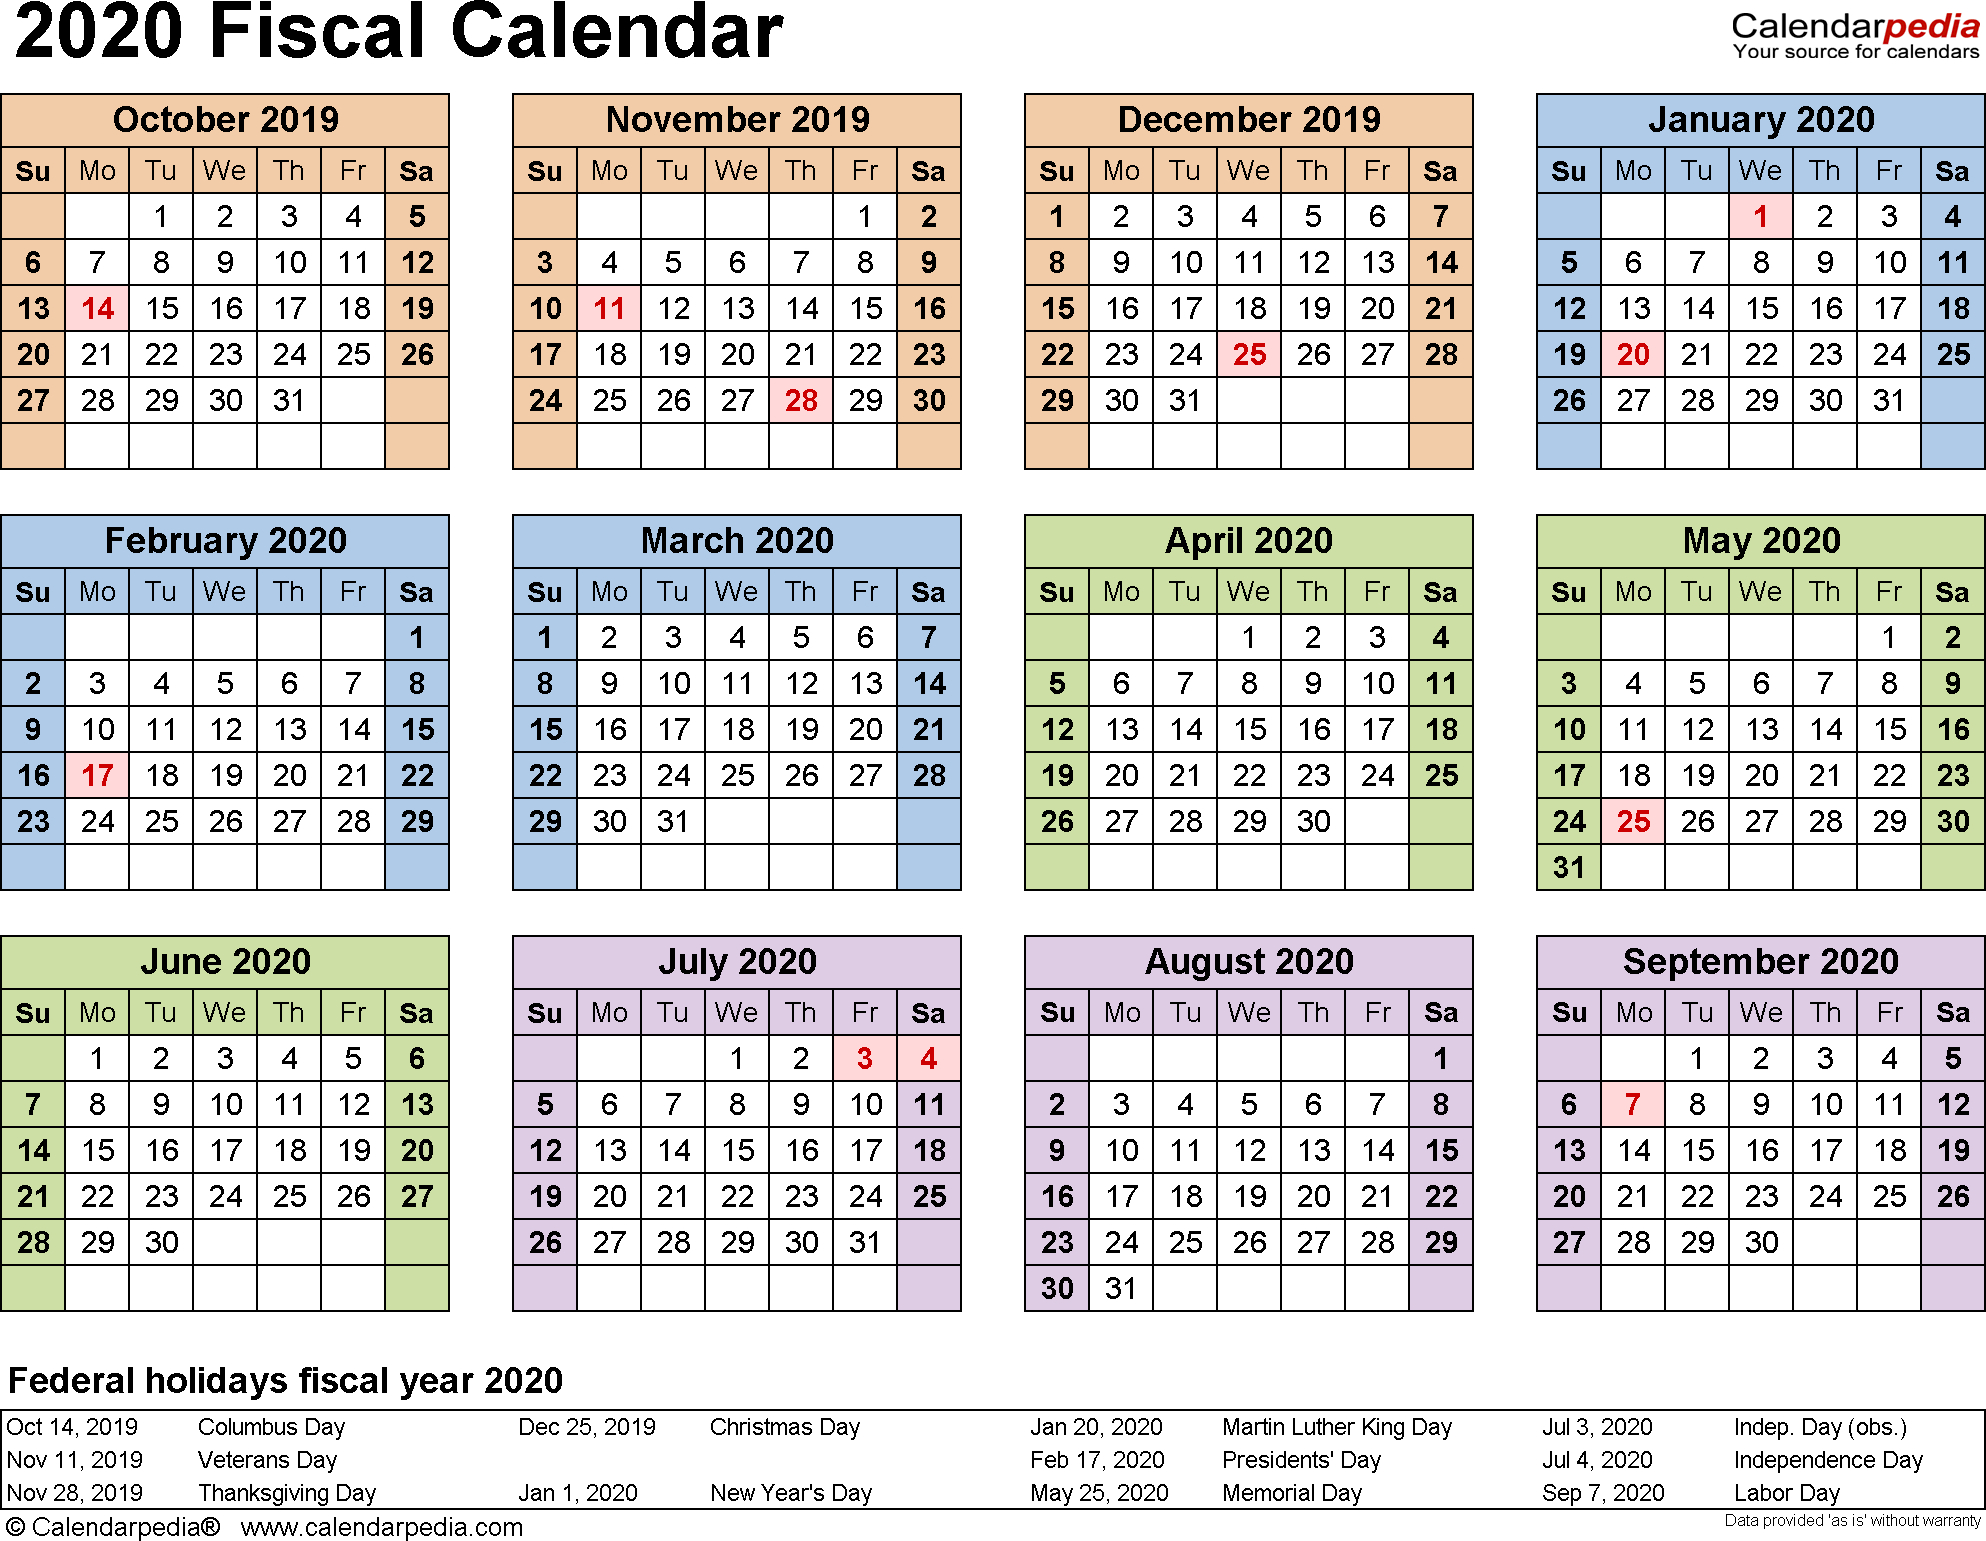 Fiscal Calendars 2020 As Free Printable Word Templates for Printable Yearly Calendar July 2019 - June 2020